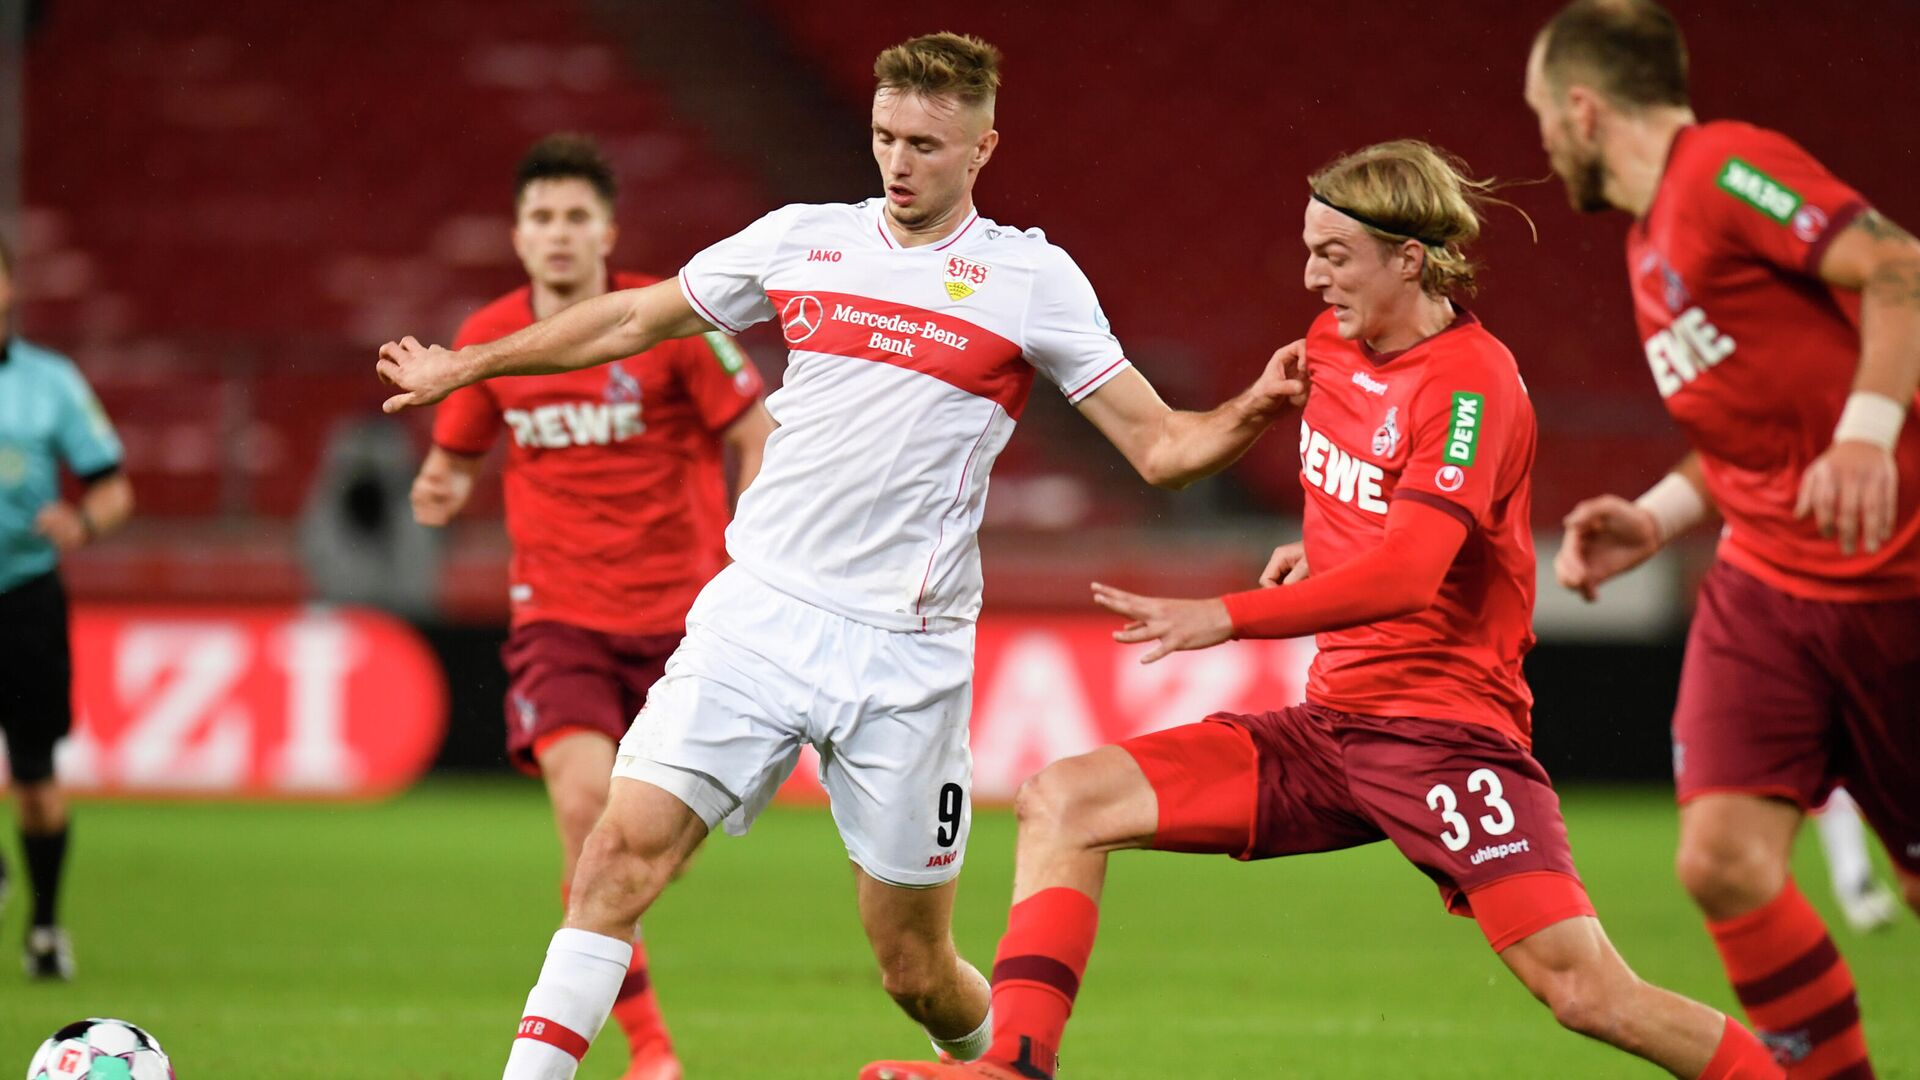 Stuttgart's Austrian forward Sasa Kalajdzic (L) and Cologne's Belgian defender Sebastiaan Bornauw vie for the ball during the German first division Bundesliga football match VfB Stuttgart v 1 FC Cologne in Stuttgart, southern Germany, on October 23, 2020. (Photo by THOMAS KIENZLE / AFP) / DFL REGULATIONS PROHIBIT ANY USE OF PHOTOGRAPHS AS IMAGE SEQUENCES AND/OR QUASI-VIDEO - РИА Новости, 1920, 23.10.2020